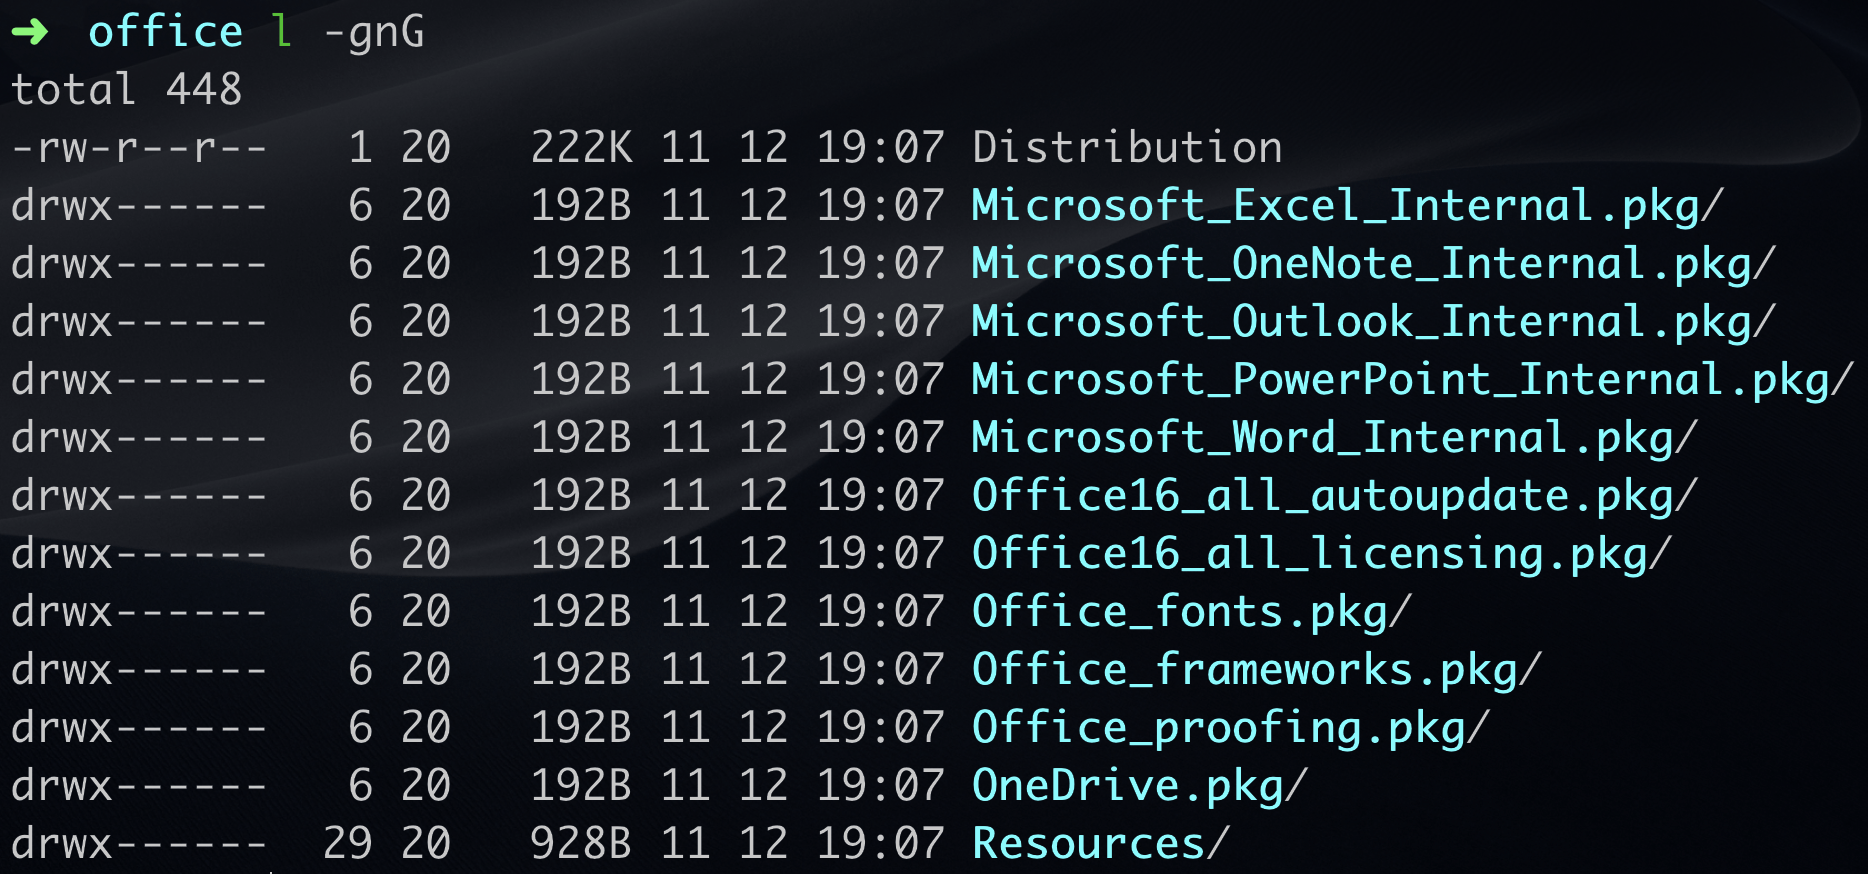 office-directory-list.png